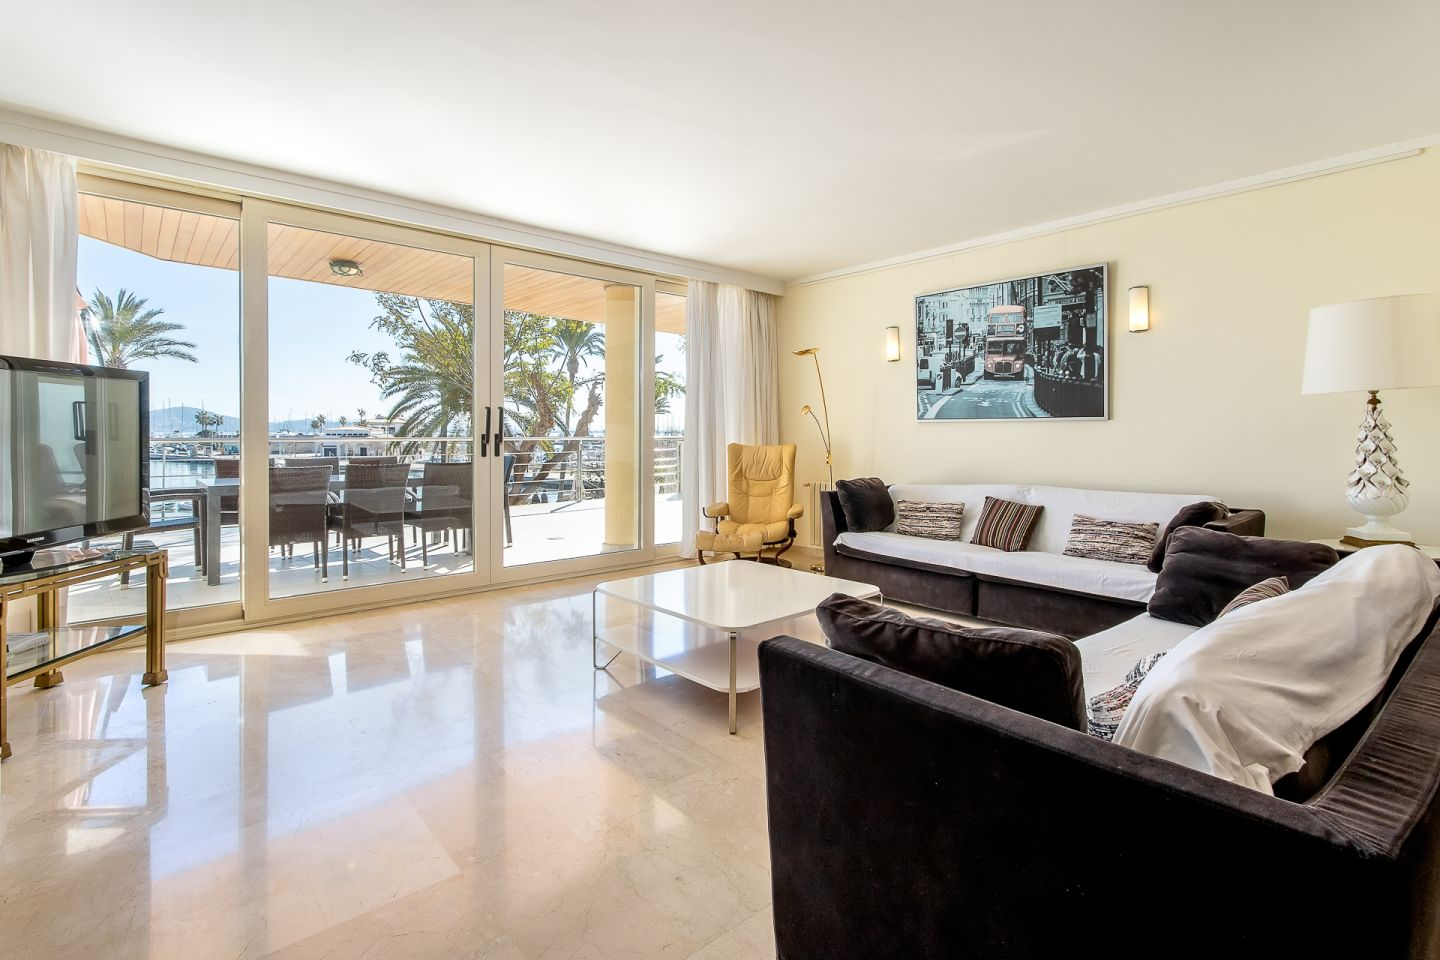 5 Bed Apartment for sale in Puerto Pollensa 8